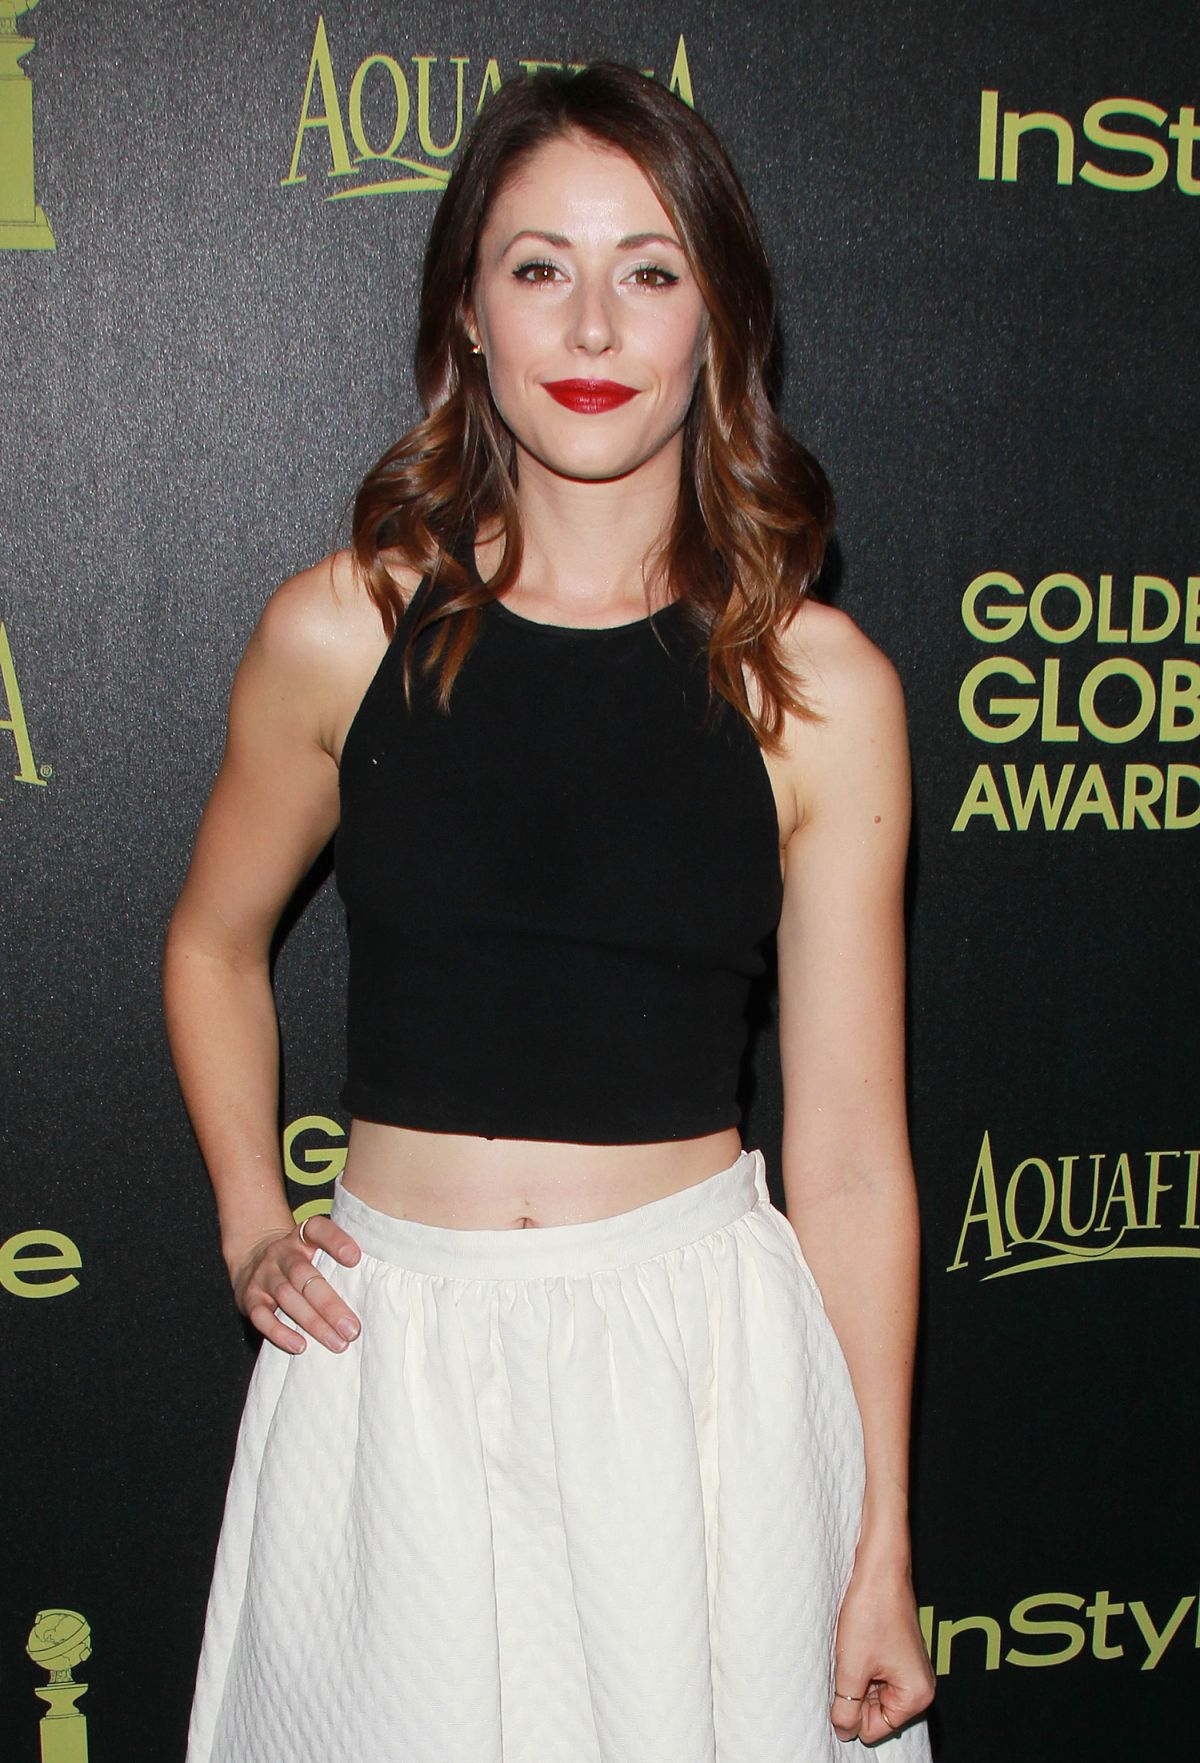 AMANDA CREW at Hfpa abd Instyle Celebrate 2015 Golden Globe Award Season in Hollywood